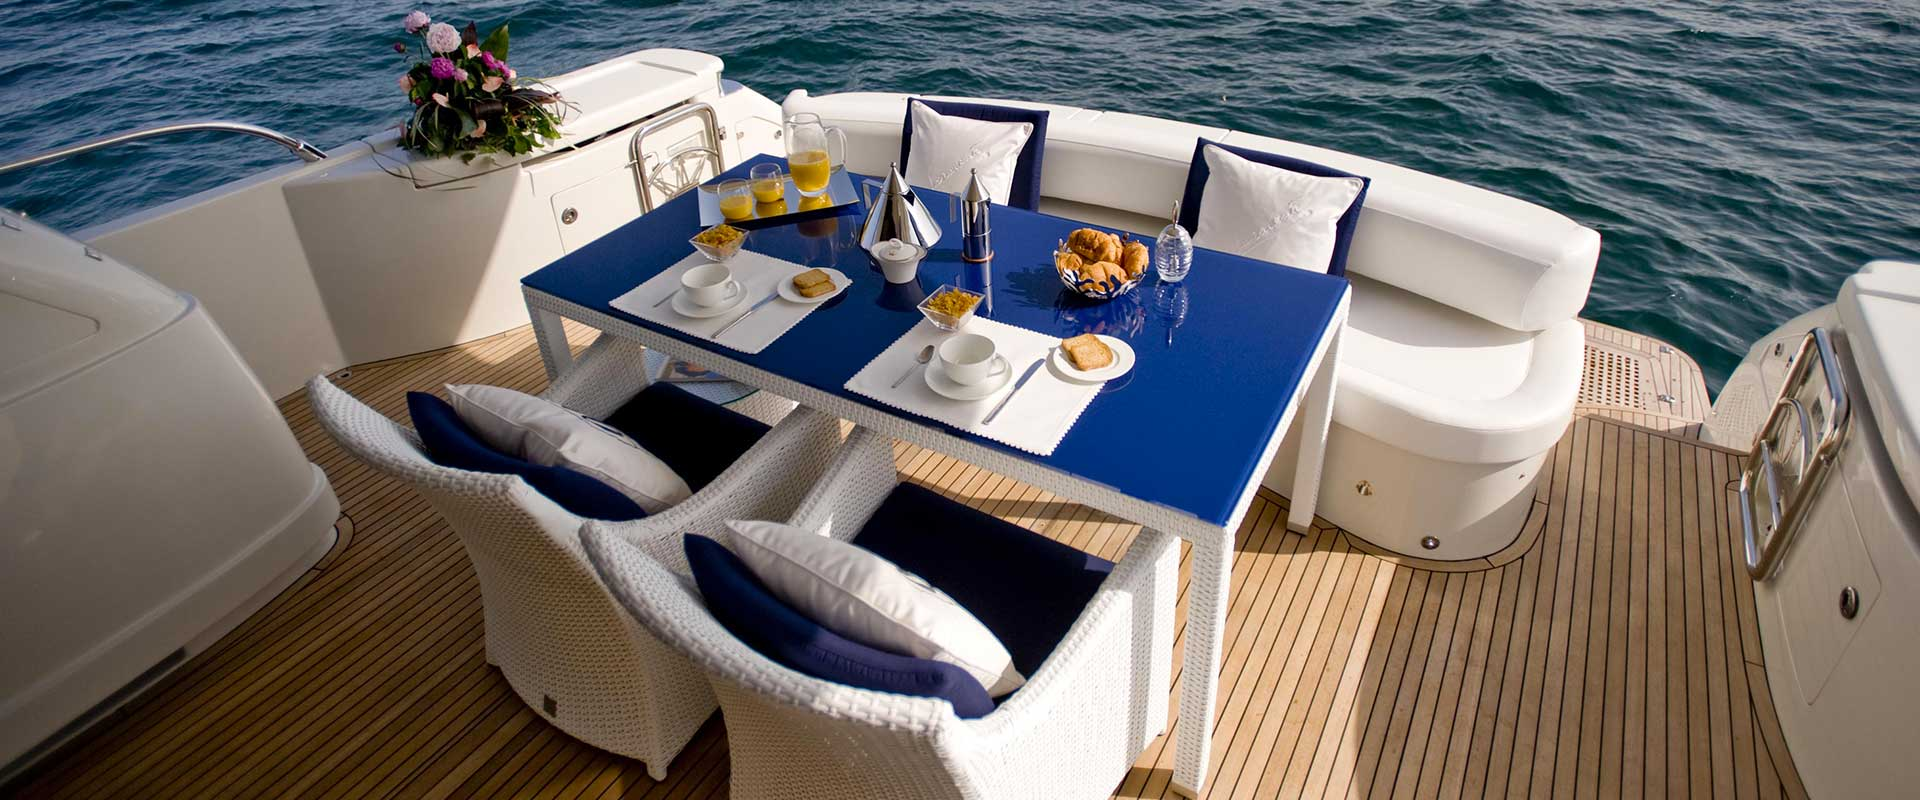 Outdoor collection lounge set on a yatch